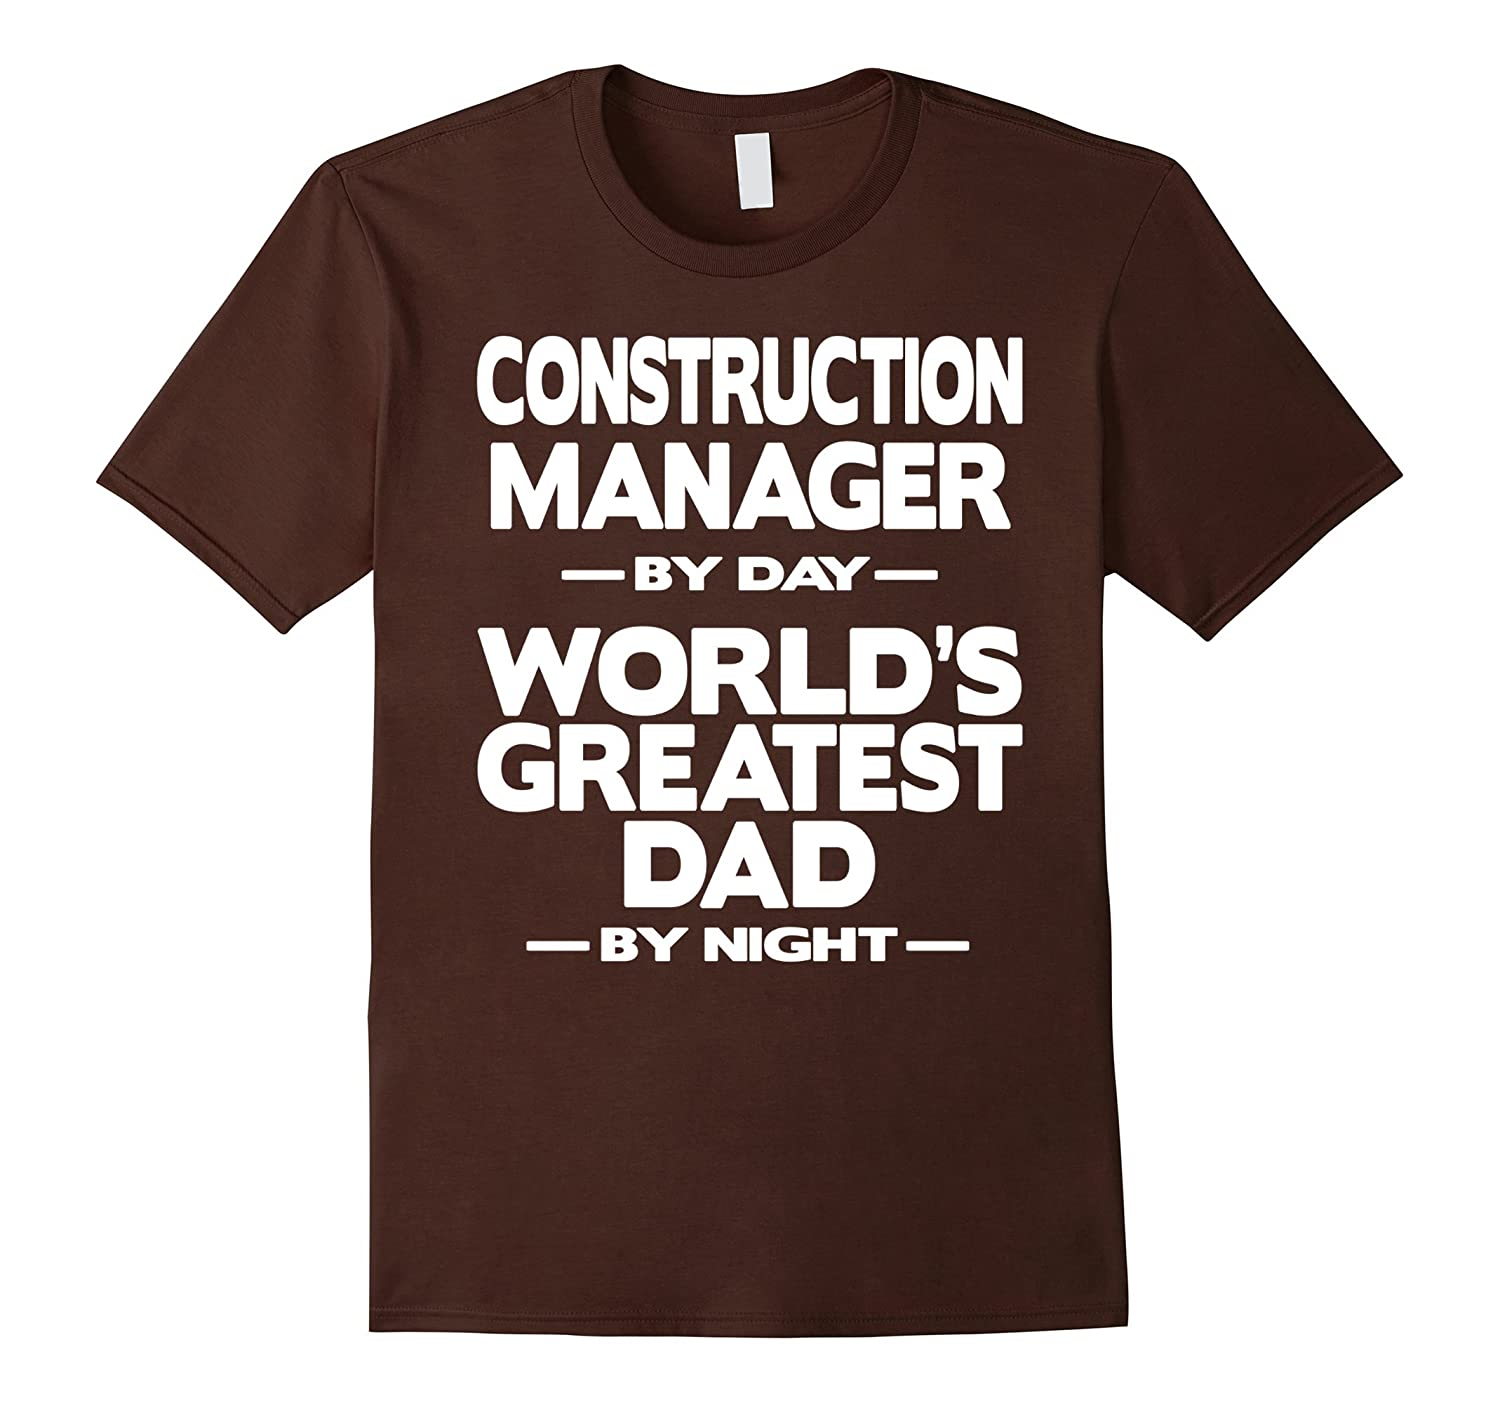 Construction Manager Worlds Greatest Dad T-Shirt-TD